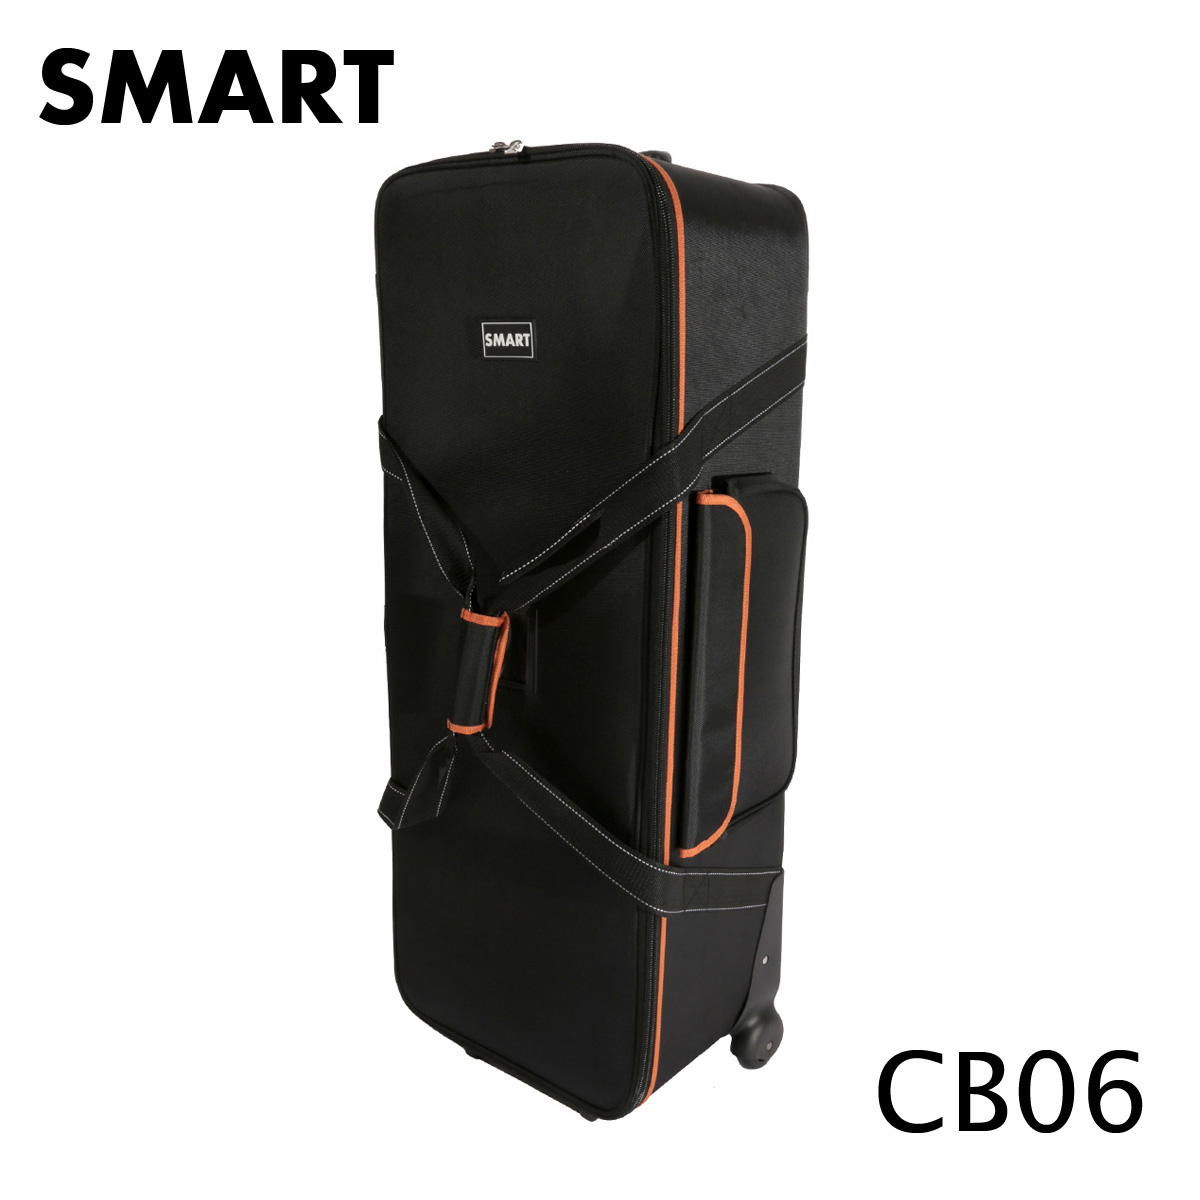 SMART CB06 Hard trolley bag for x3 mini studio flash